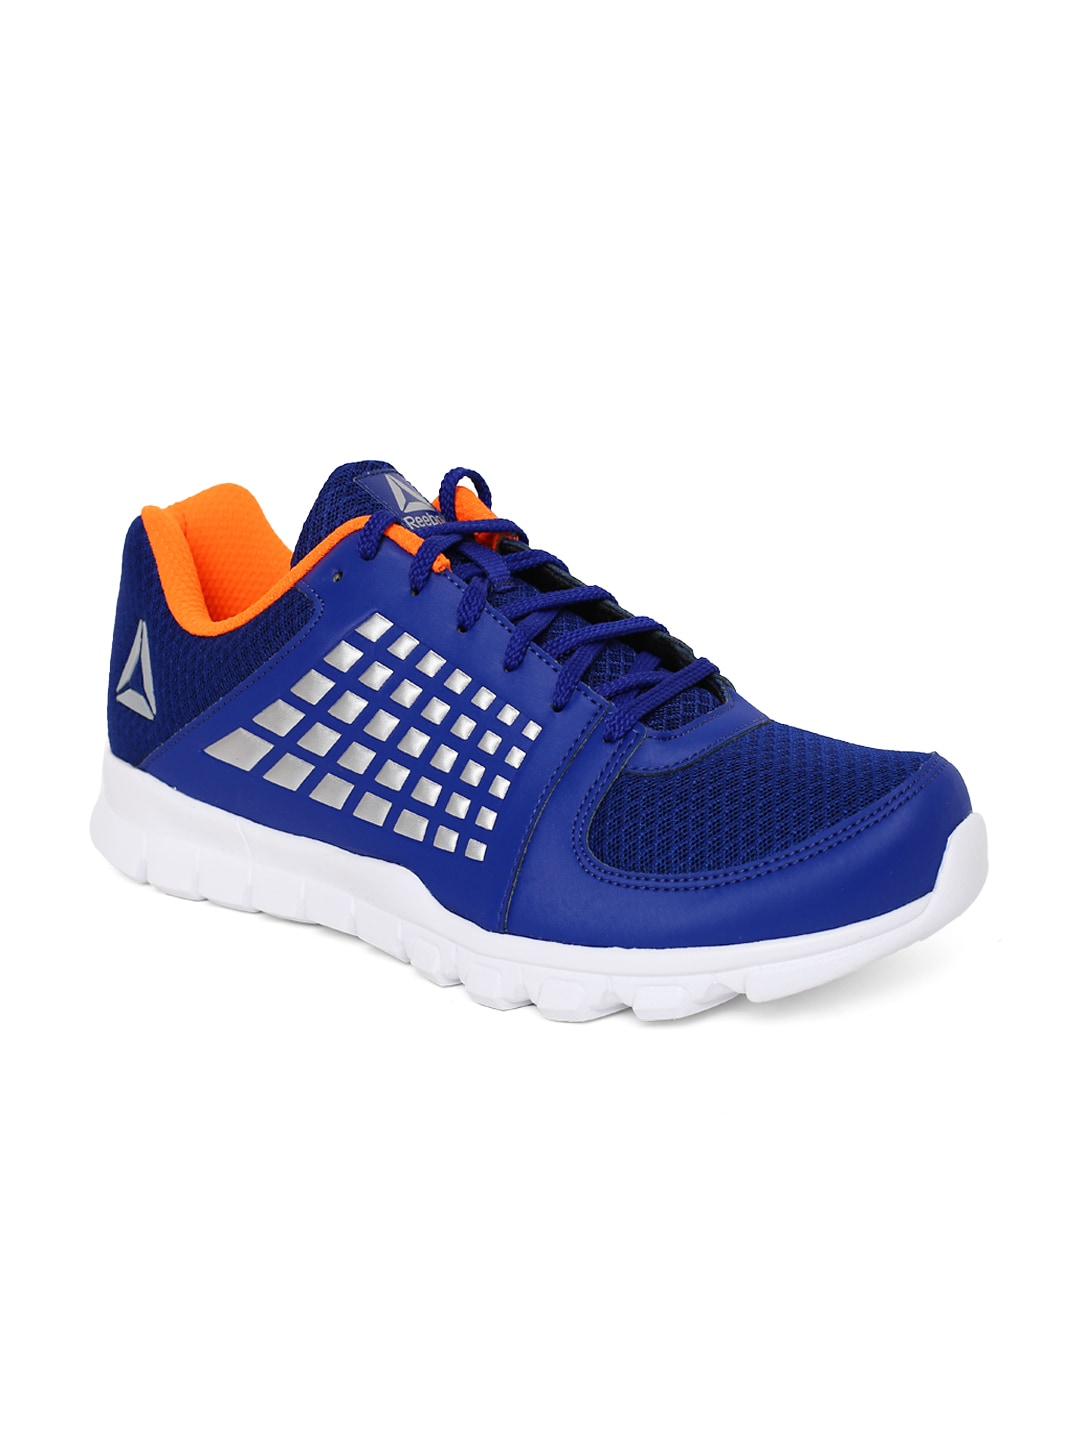 Reebok Speed Sports Shoes - Buy Reebok Speed Sports Shoes online in India 3e35395a3